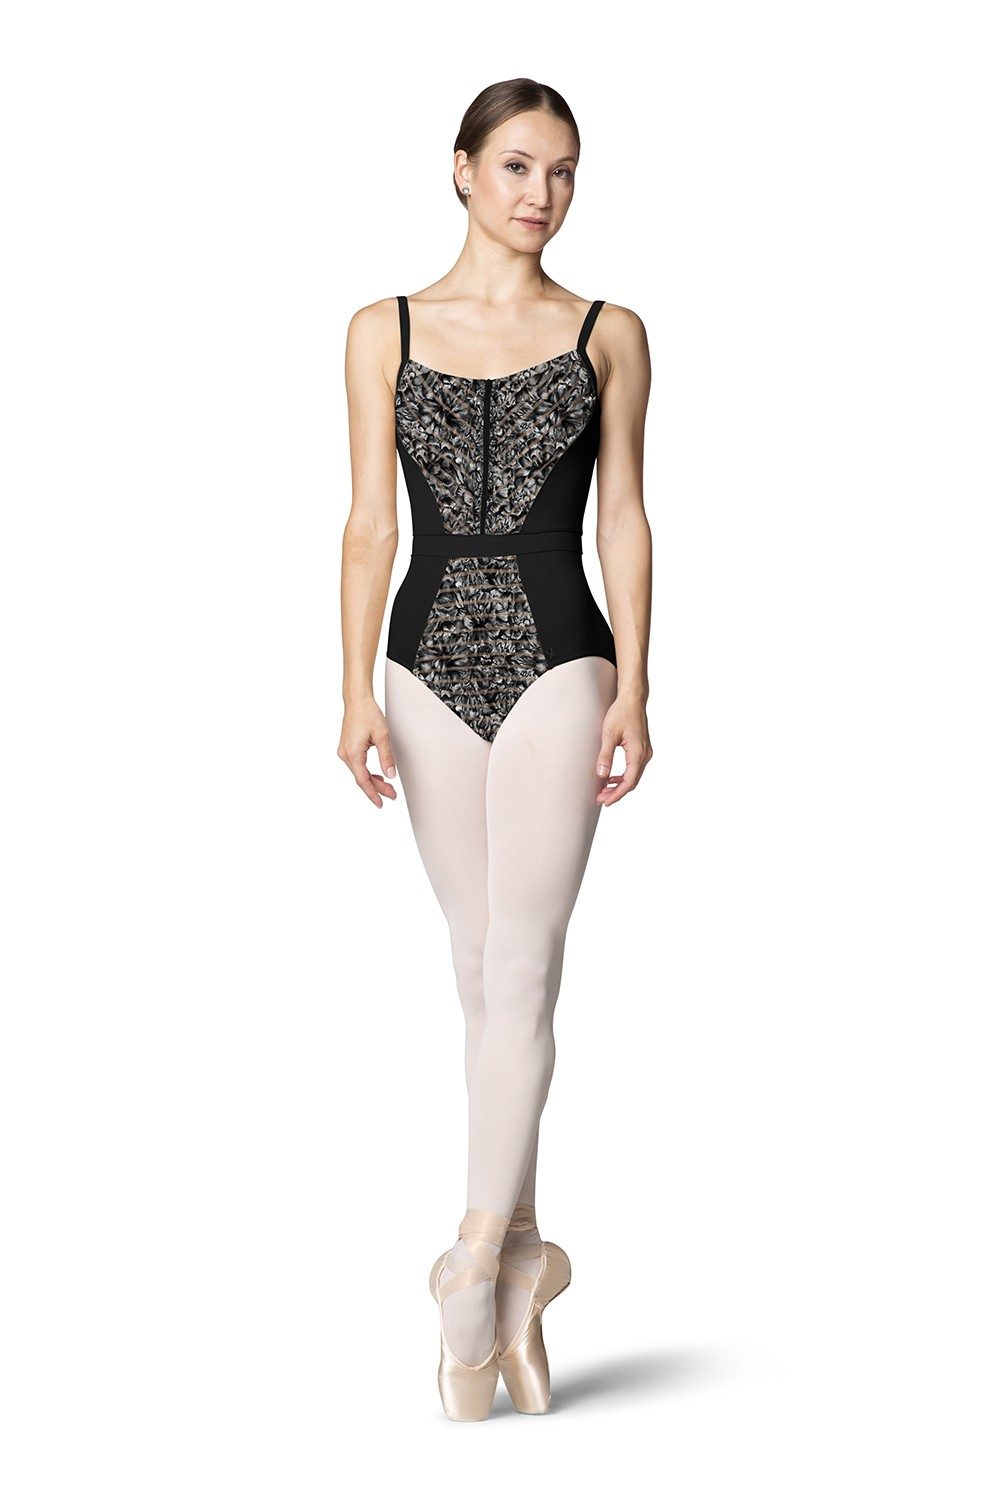 Adela Women's Dance Leotards